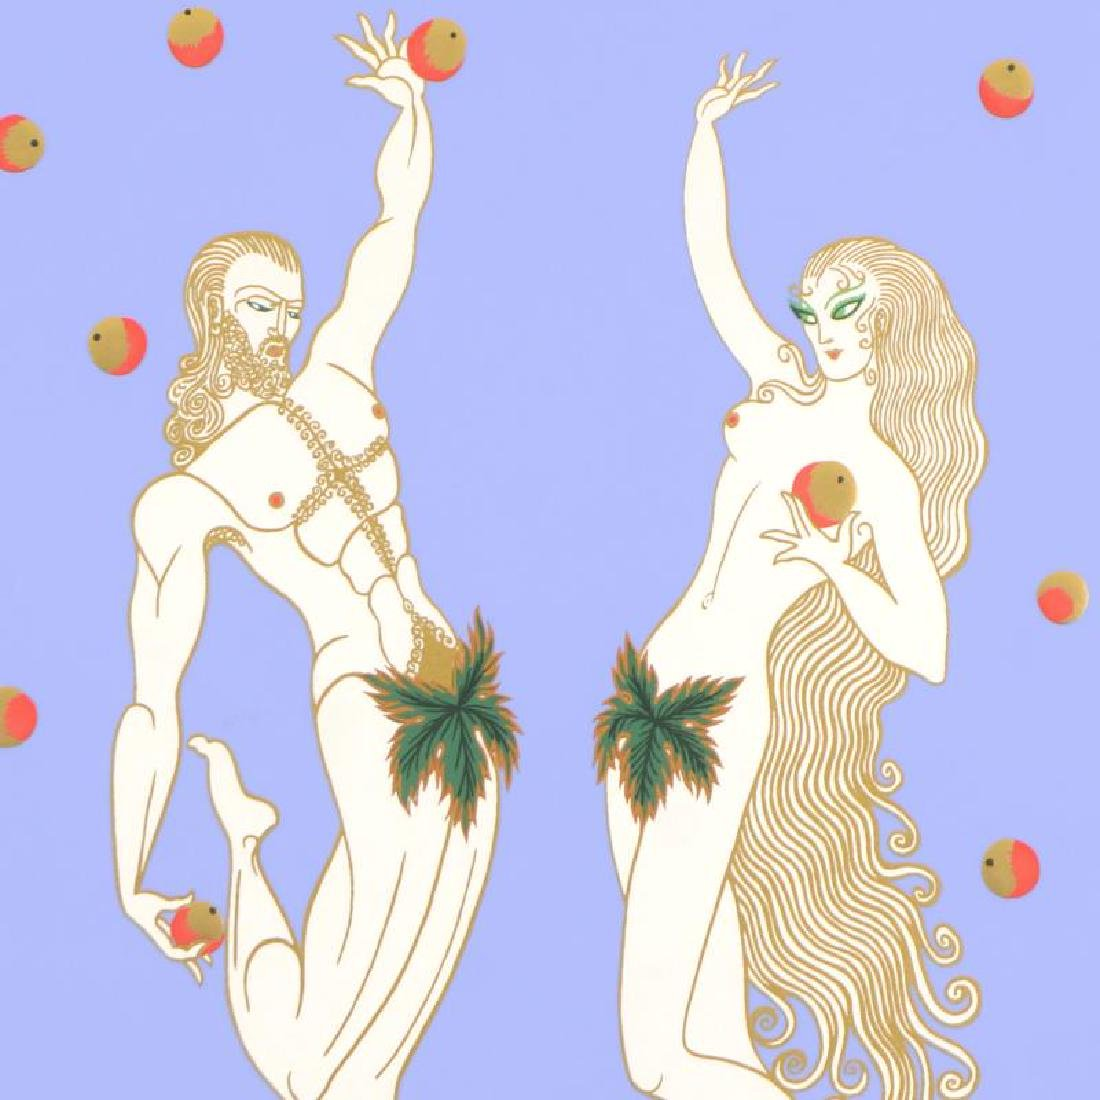 Adam and Eve by Erte (1892-1990) - 2